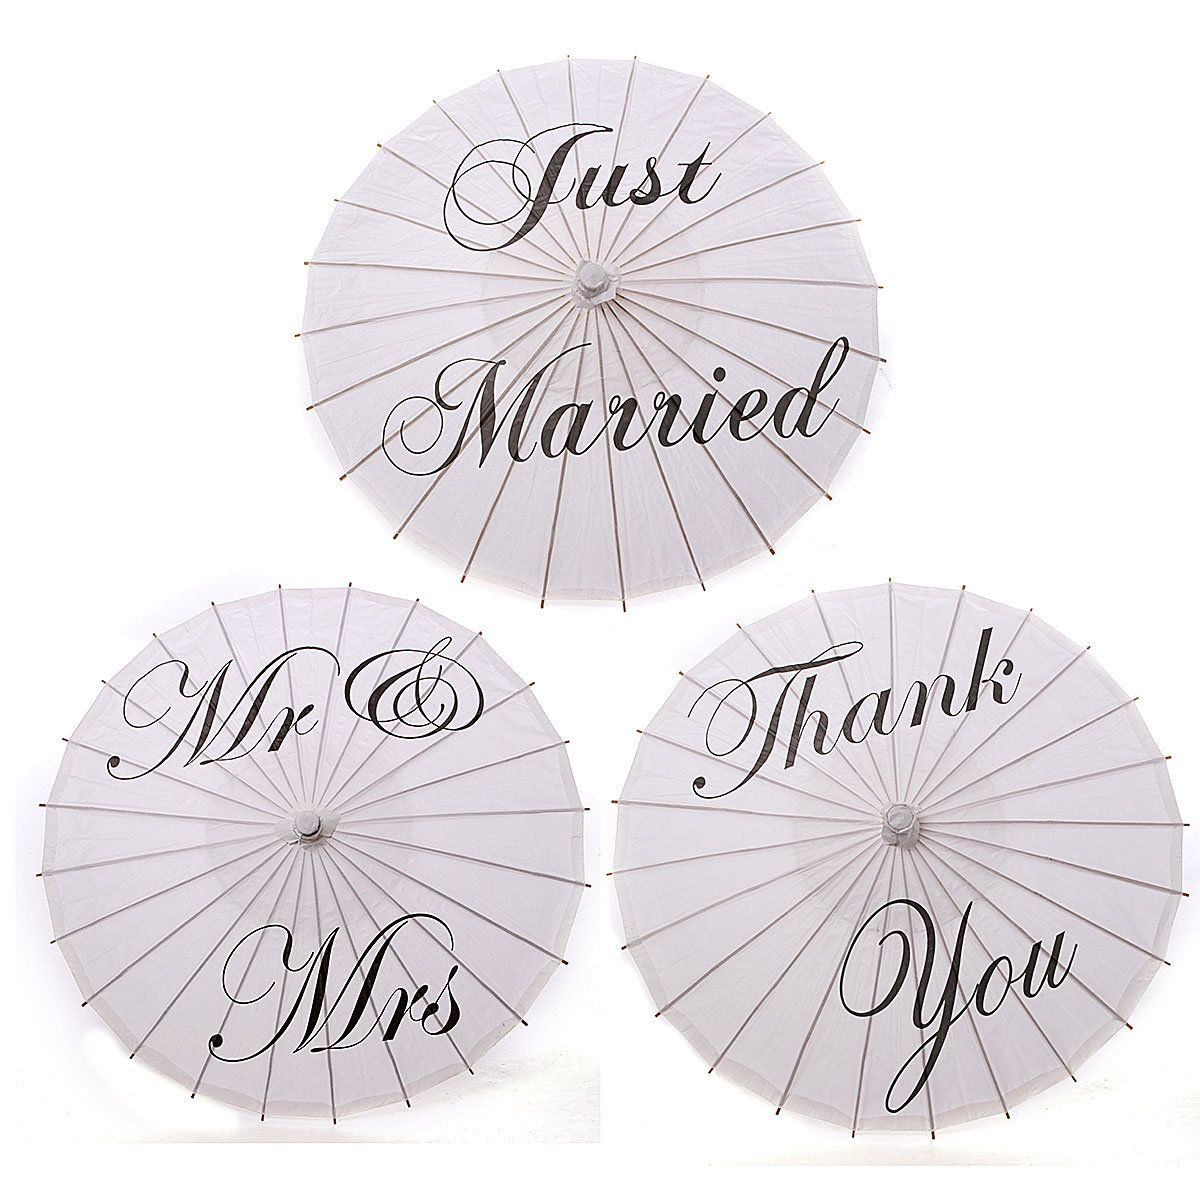 Bamboo White Paper Parasol Umbrella Just Married Mr & Mrs Thank You ...